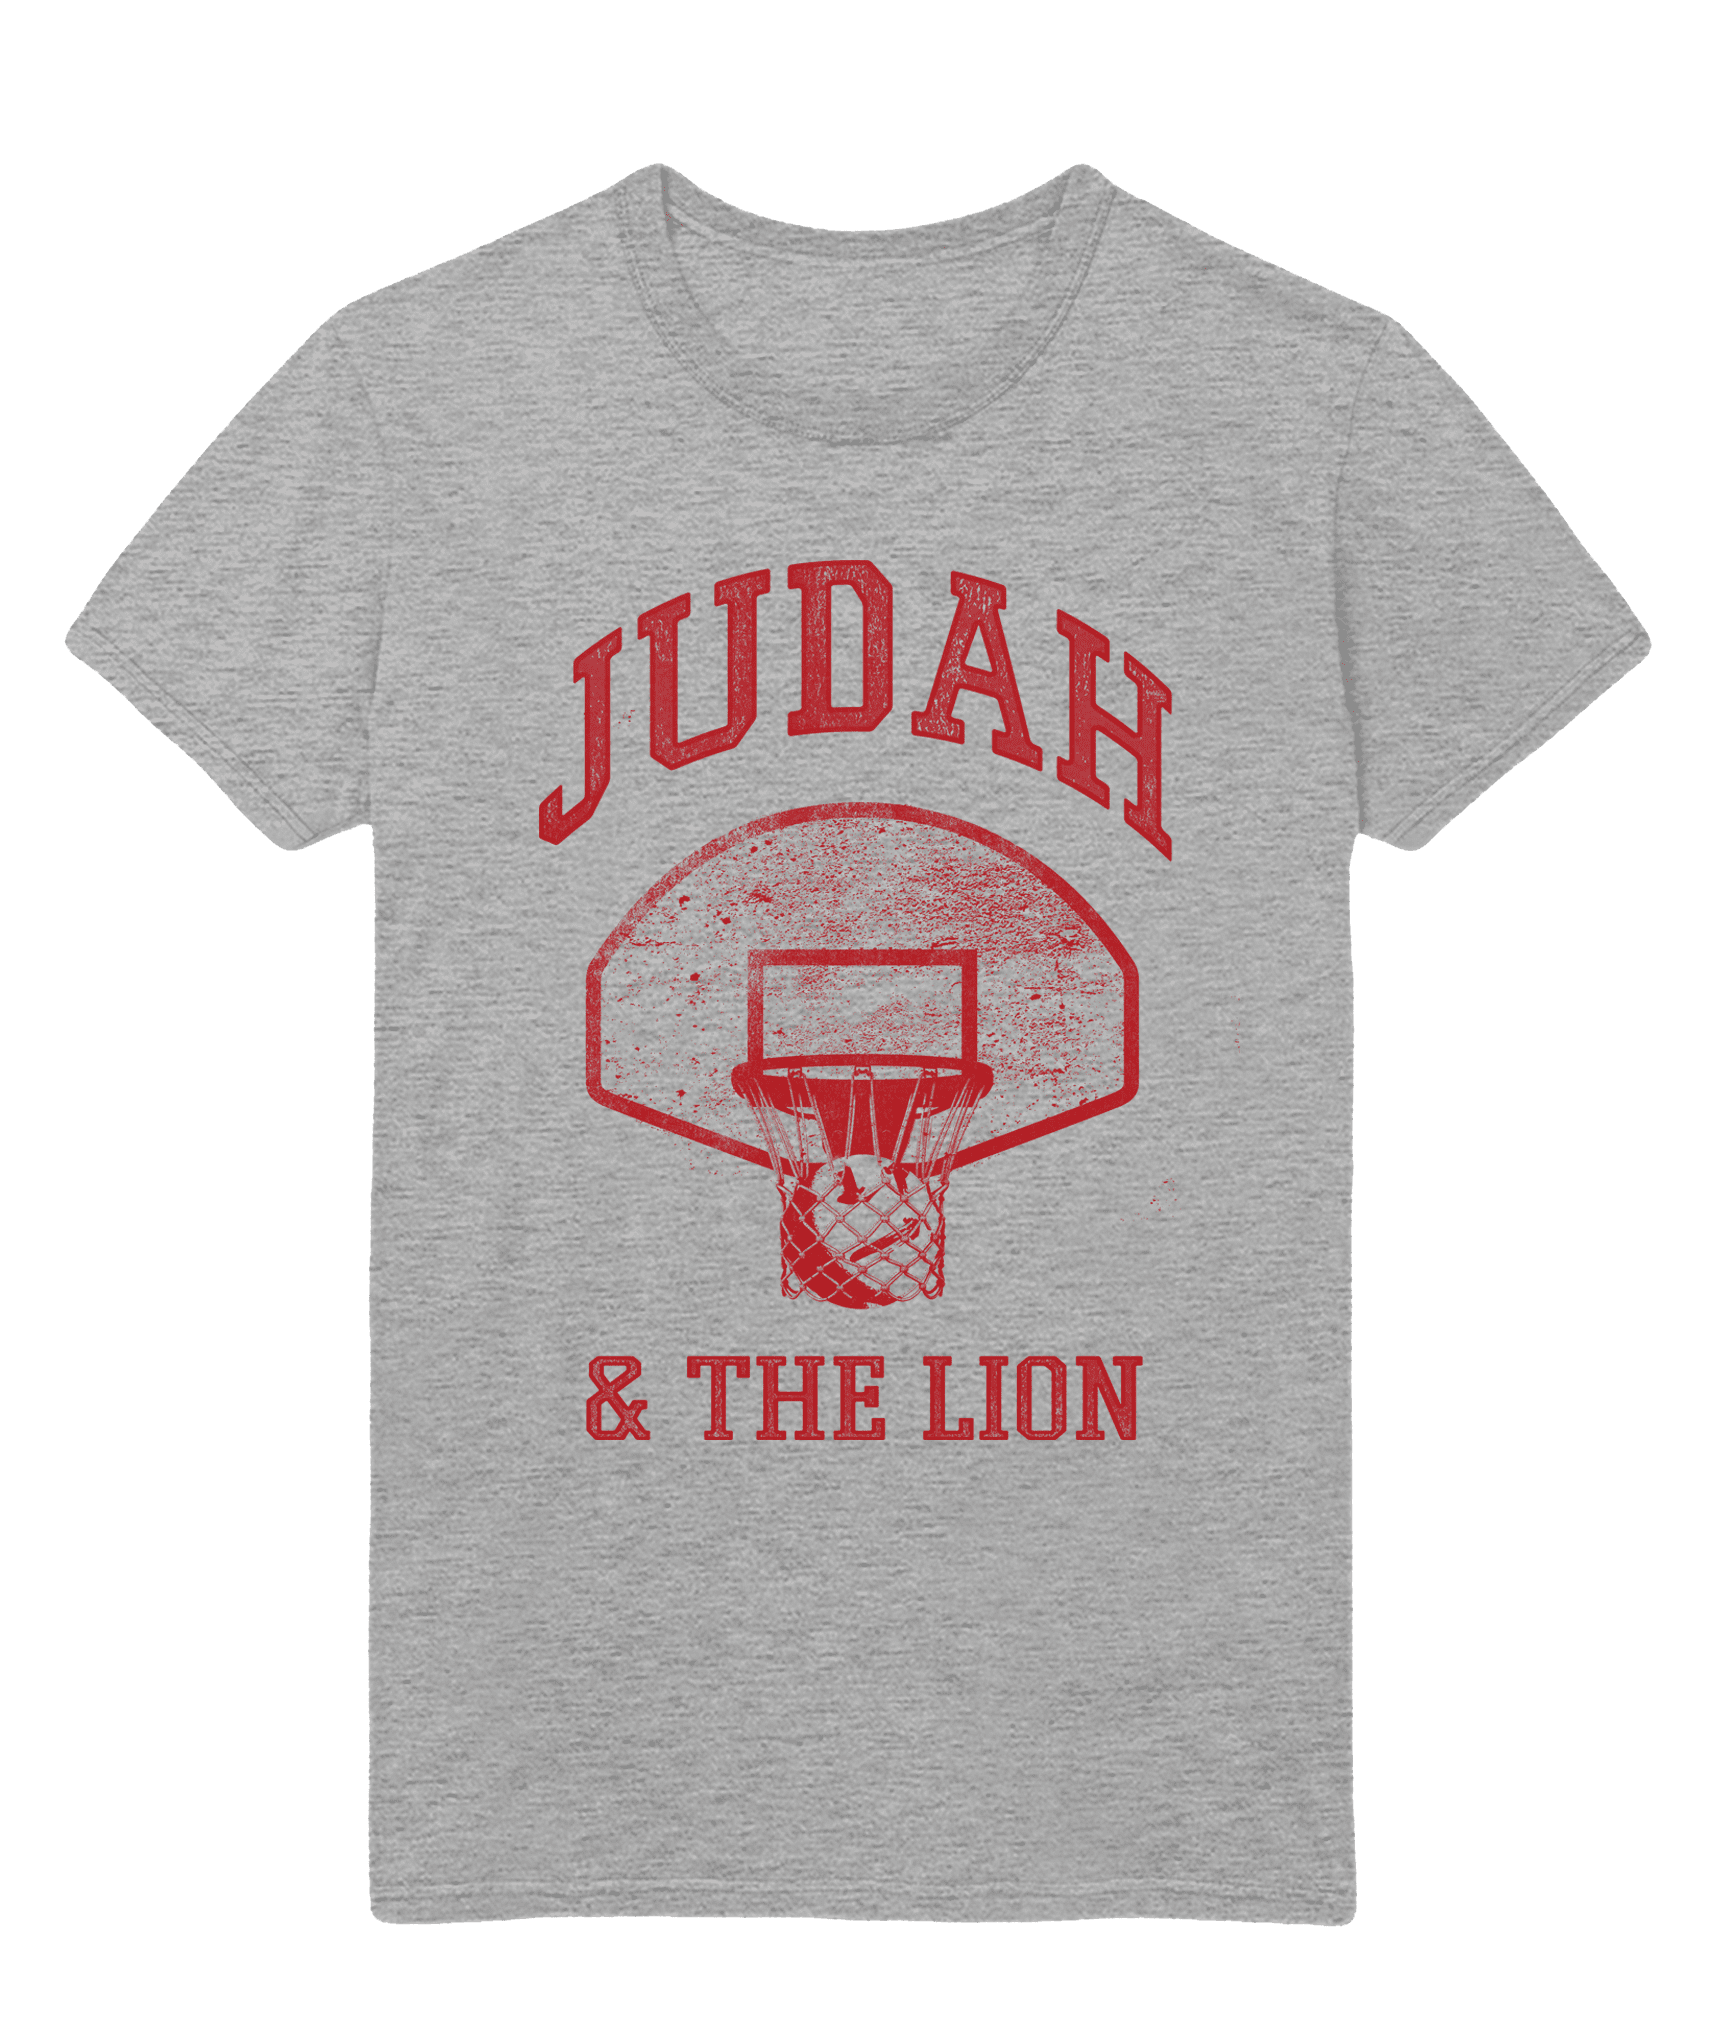 judah_gym_shirt_3